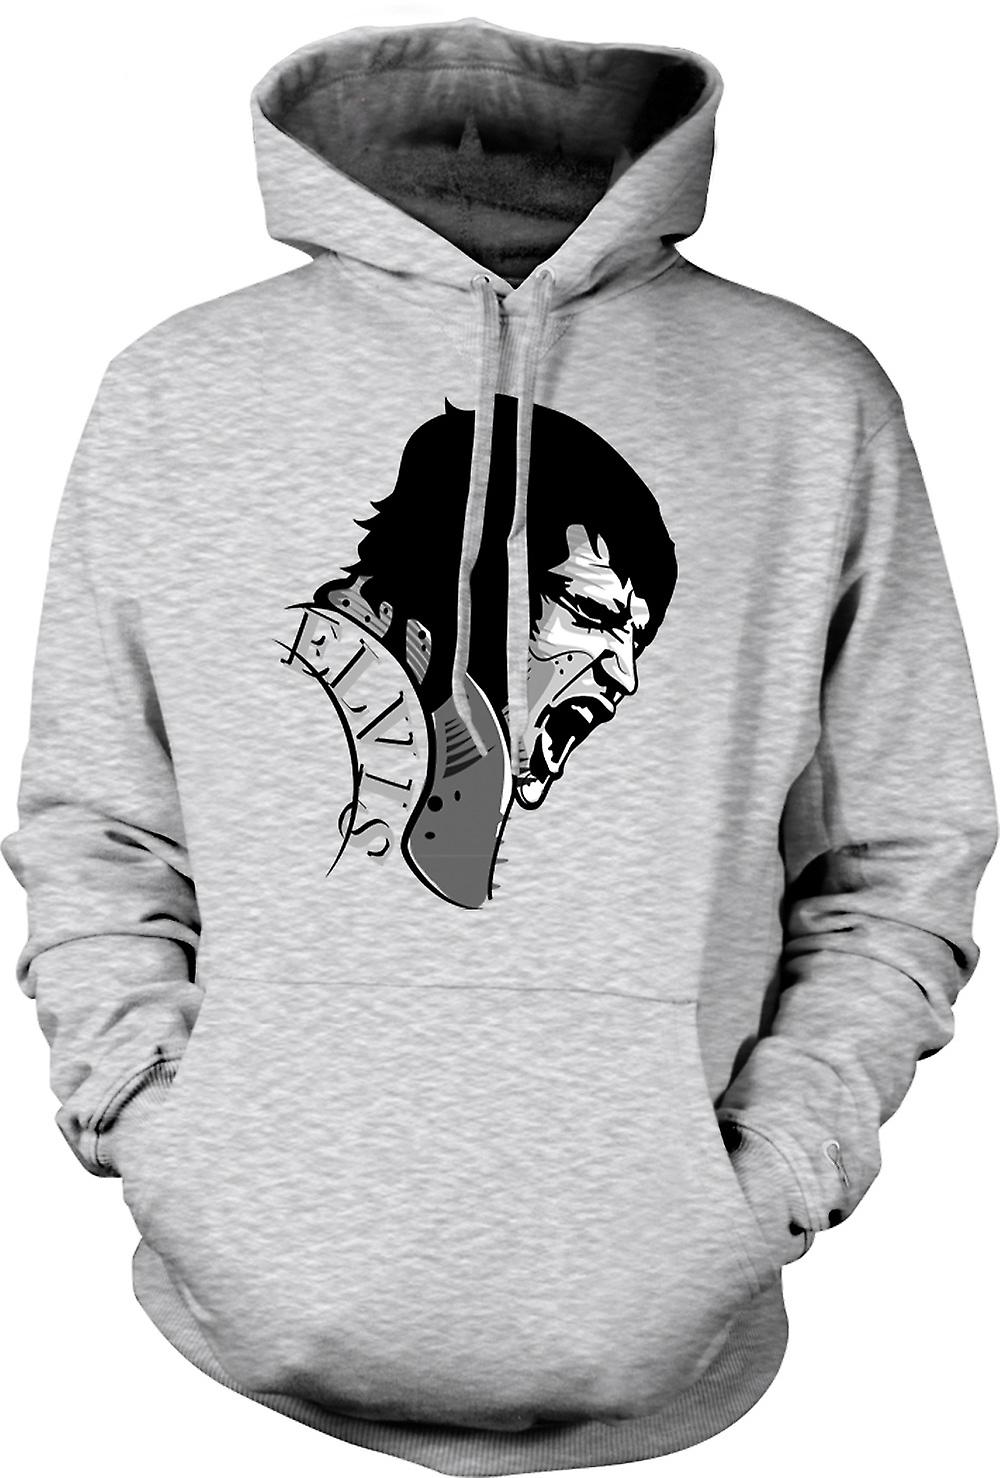 Mens Hoodie - Elvis Presley chanter - Cool